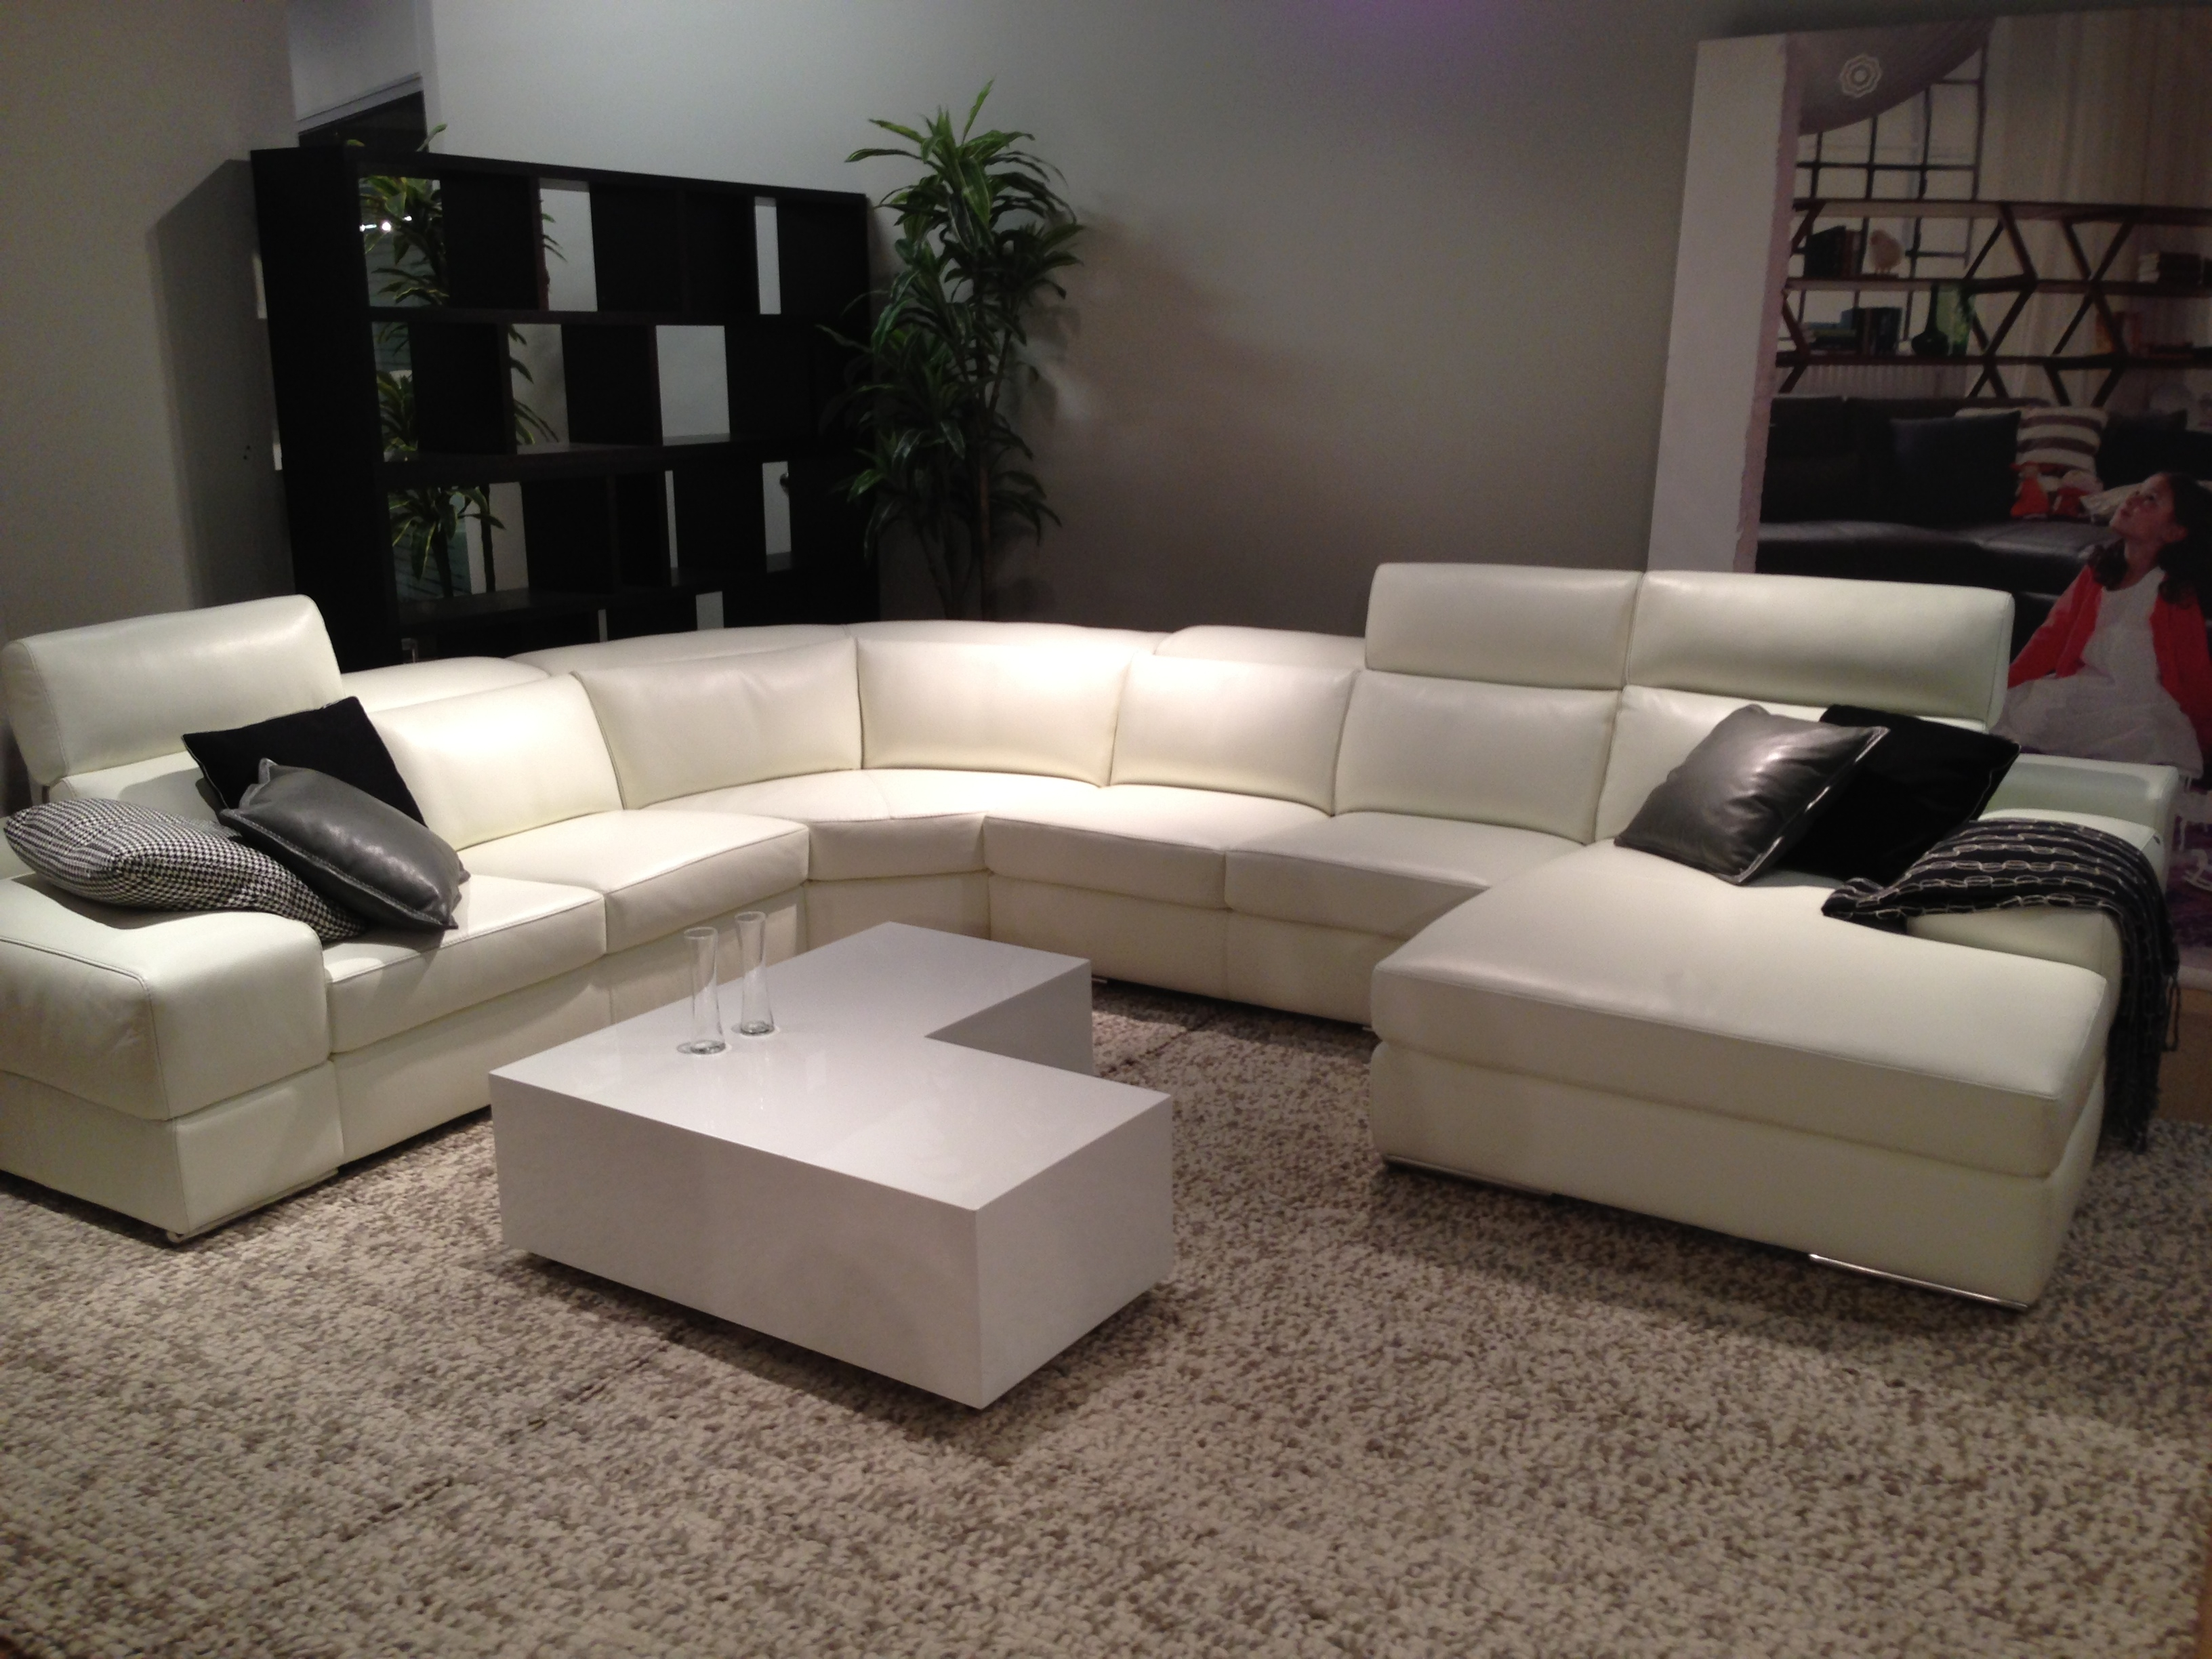 htl sofa range seat height 22 inches 10 collection of portland sectional sofas